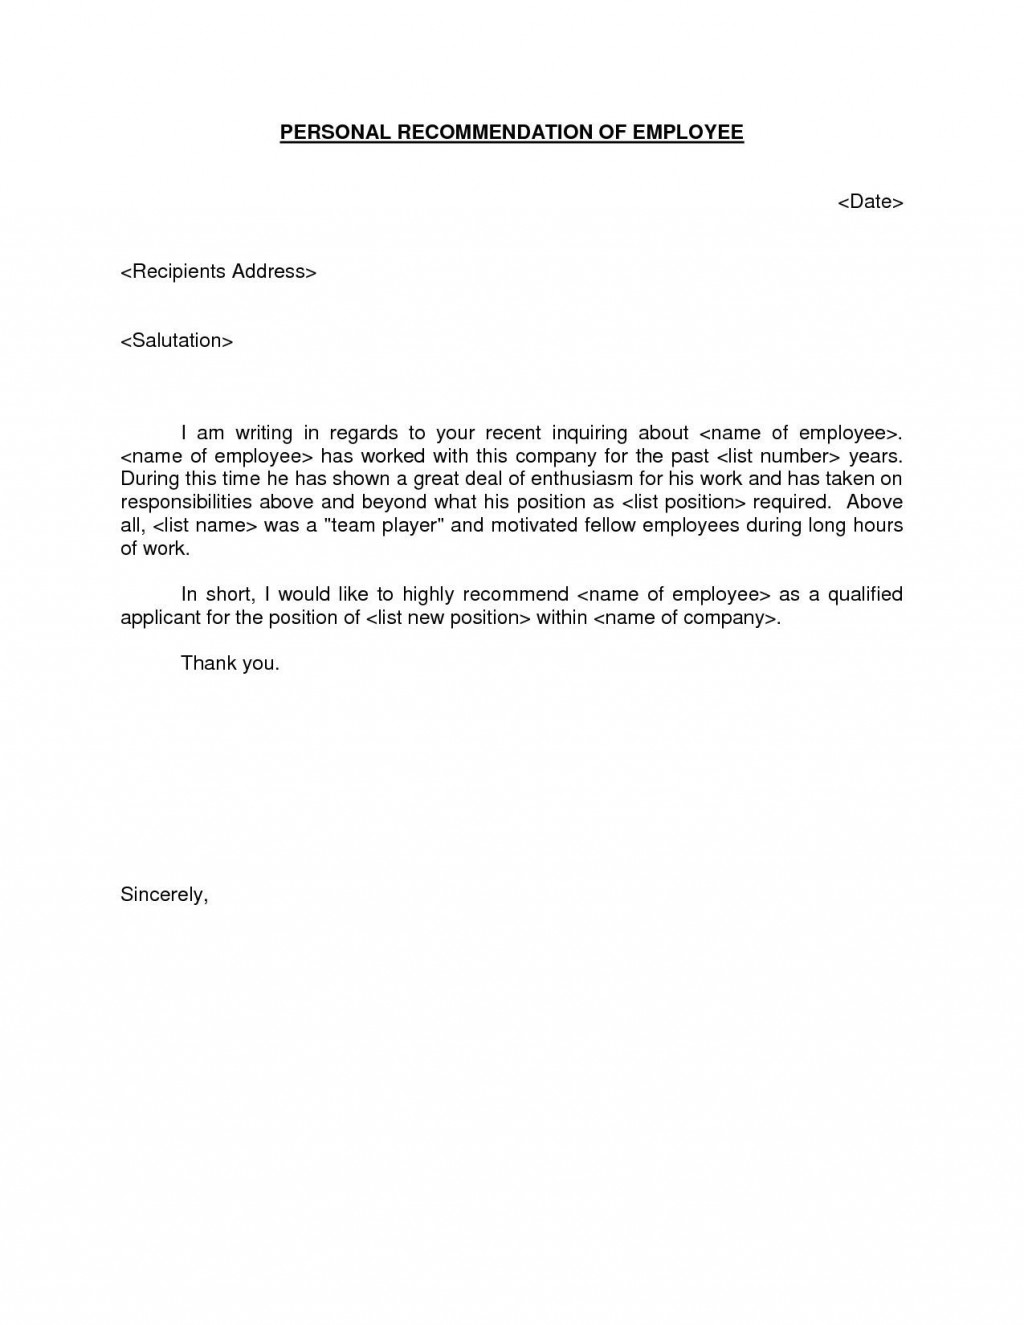 Letter Of Recommendation Sample For Job from www.addictionary.org